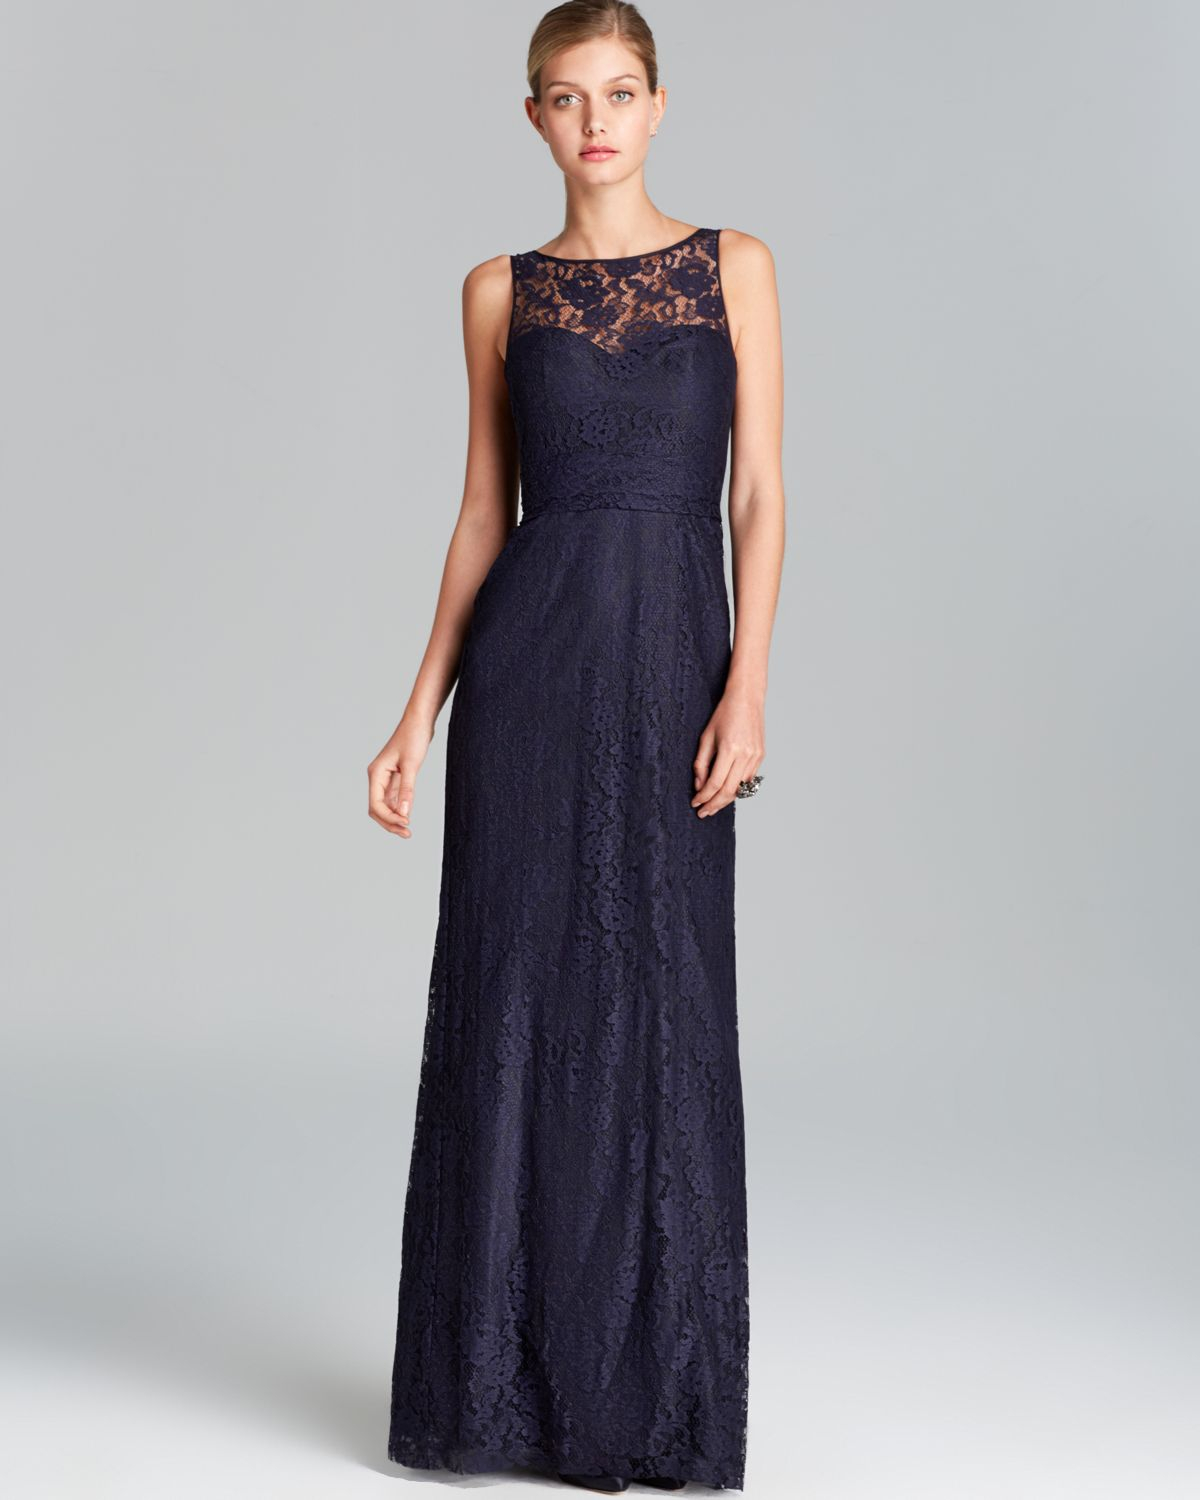 Lyst Amsale Gown Sleeveless Illusion Neckline Lace In Blue